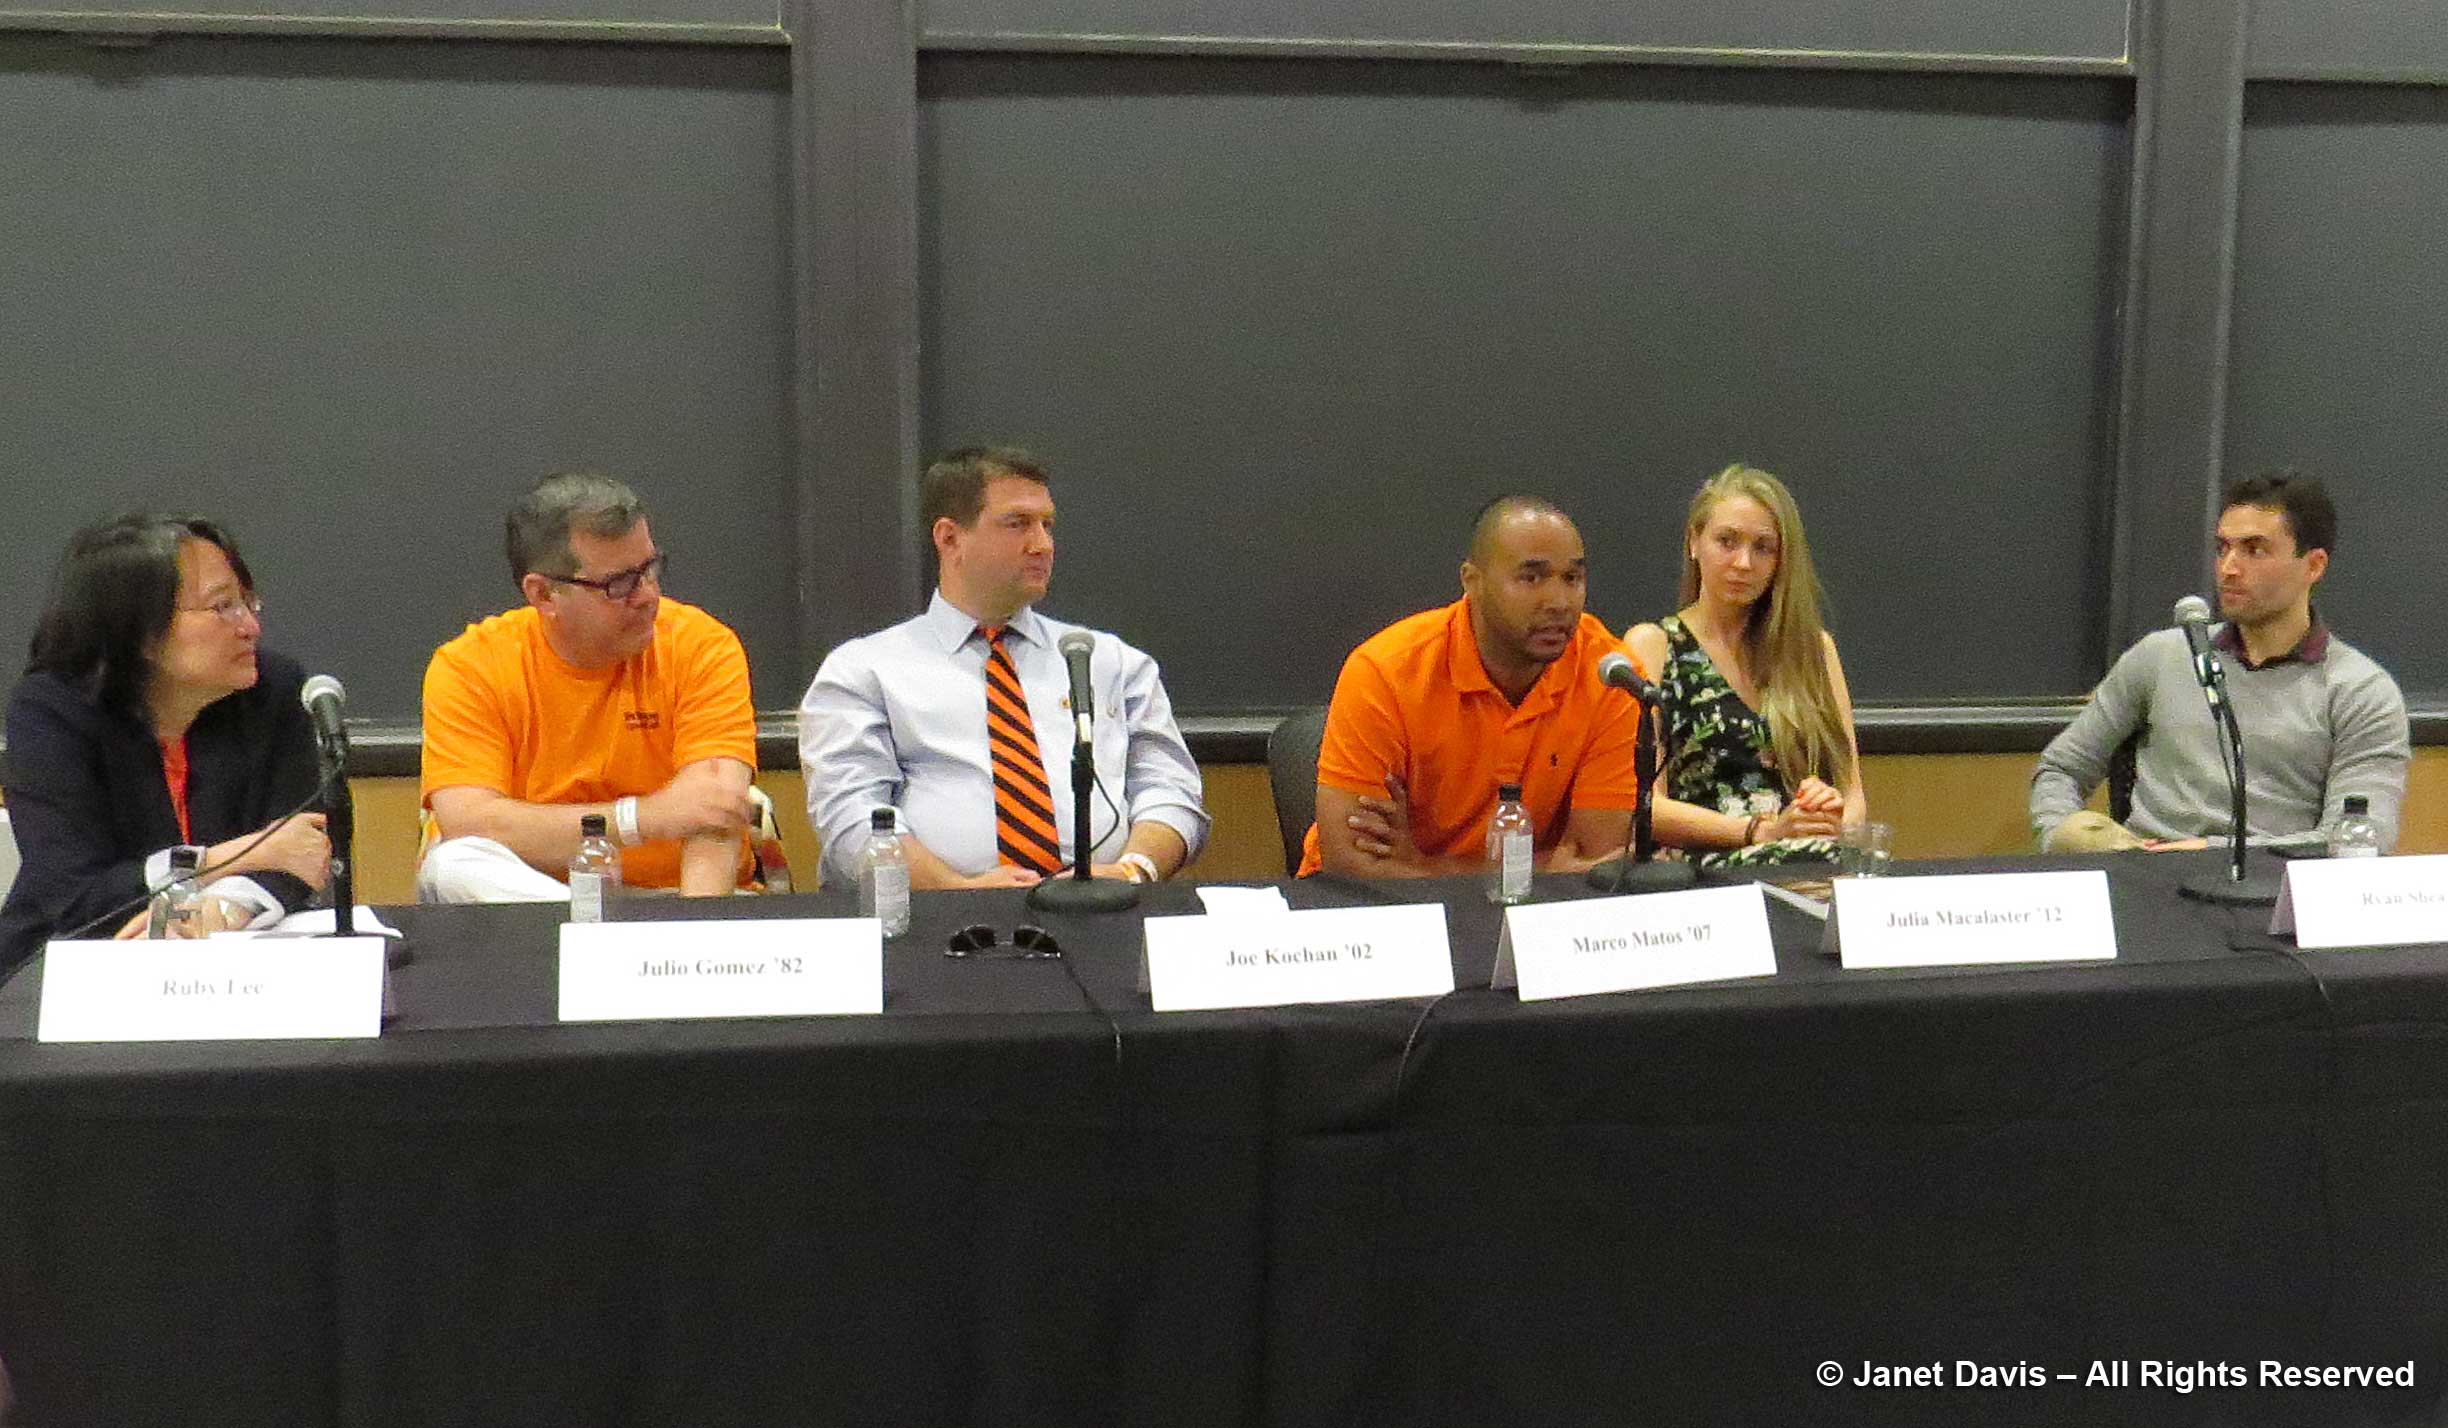 "Panel for ""The Next Big Thing in Tech"", Princeton Reunions 2017 (left to right): Moderator Ruby Lee, Forrest G. Hamrick Prof. of Electrical Engineering; Julio Gomez '82, Financial Services Technology Strategist; Joe Kochan '02, Co-Founder and COO, US Ignite; Marco Matos '07, Product Manager; Facebook; Julia Macalaster '12, Head of Strategy, Def Method; Ryan Shea '12, Co-founder, Blockstack."